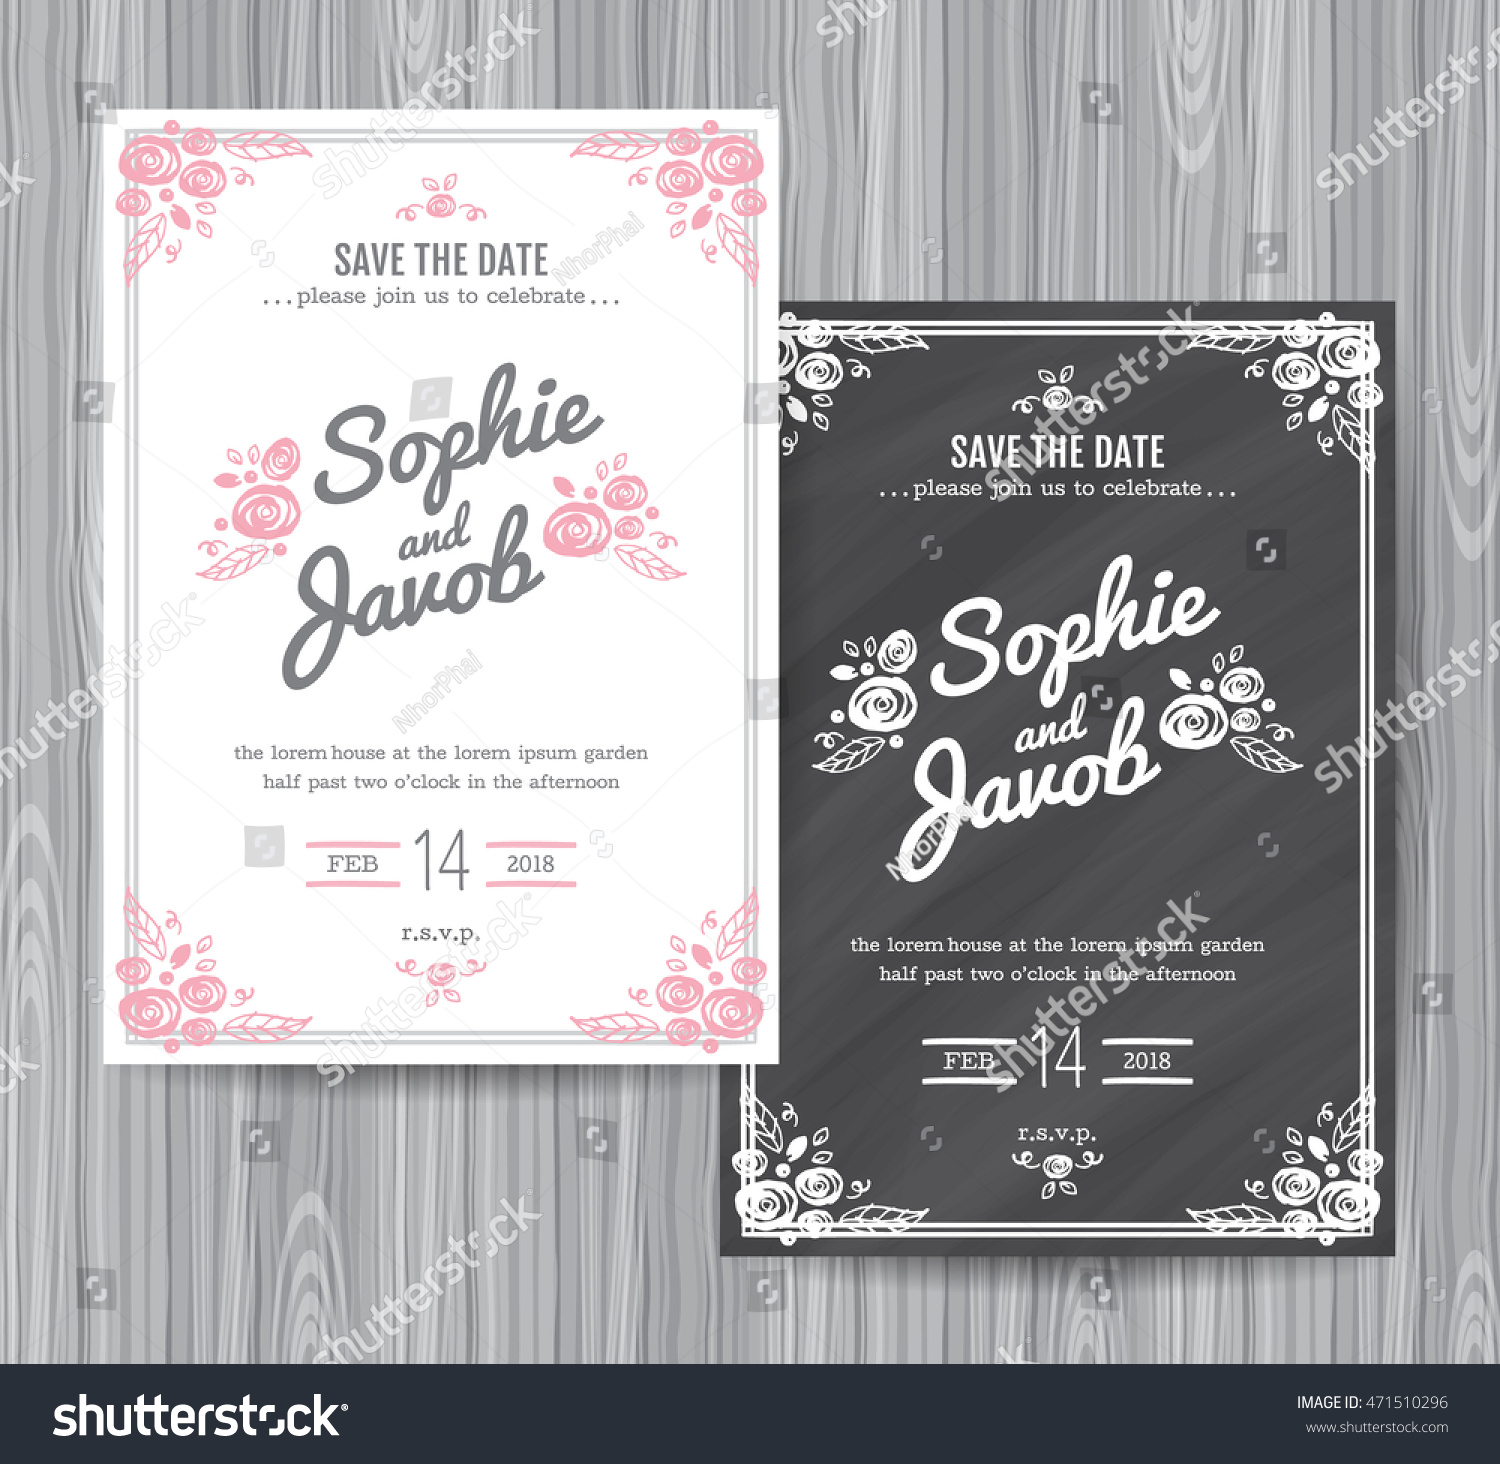 Wedding Invitation Vintage Card Wedding Invitation Stock Vector ...